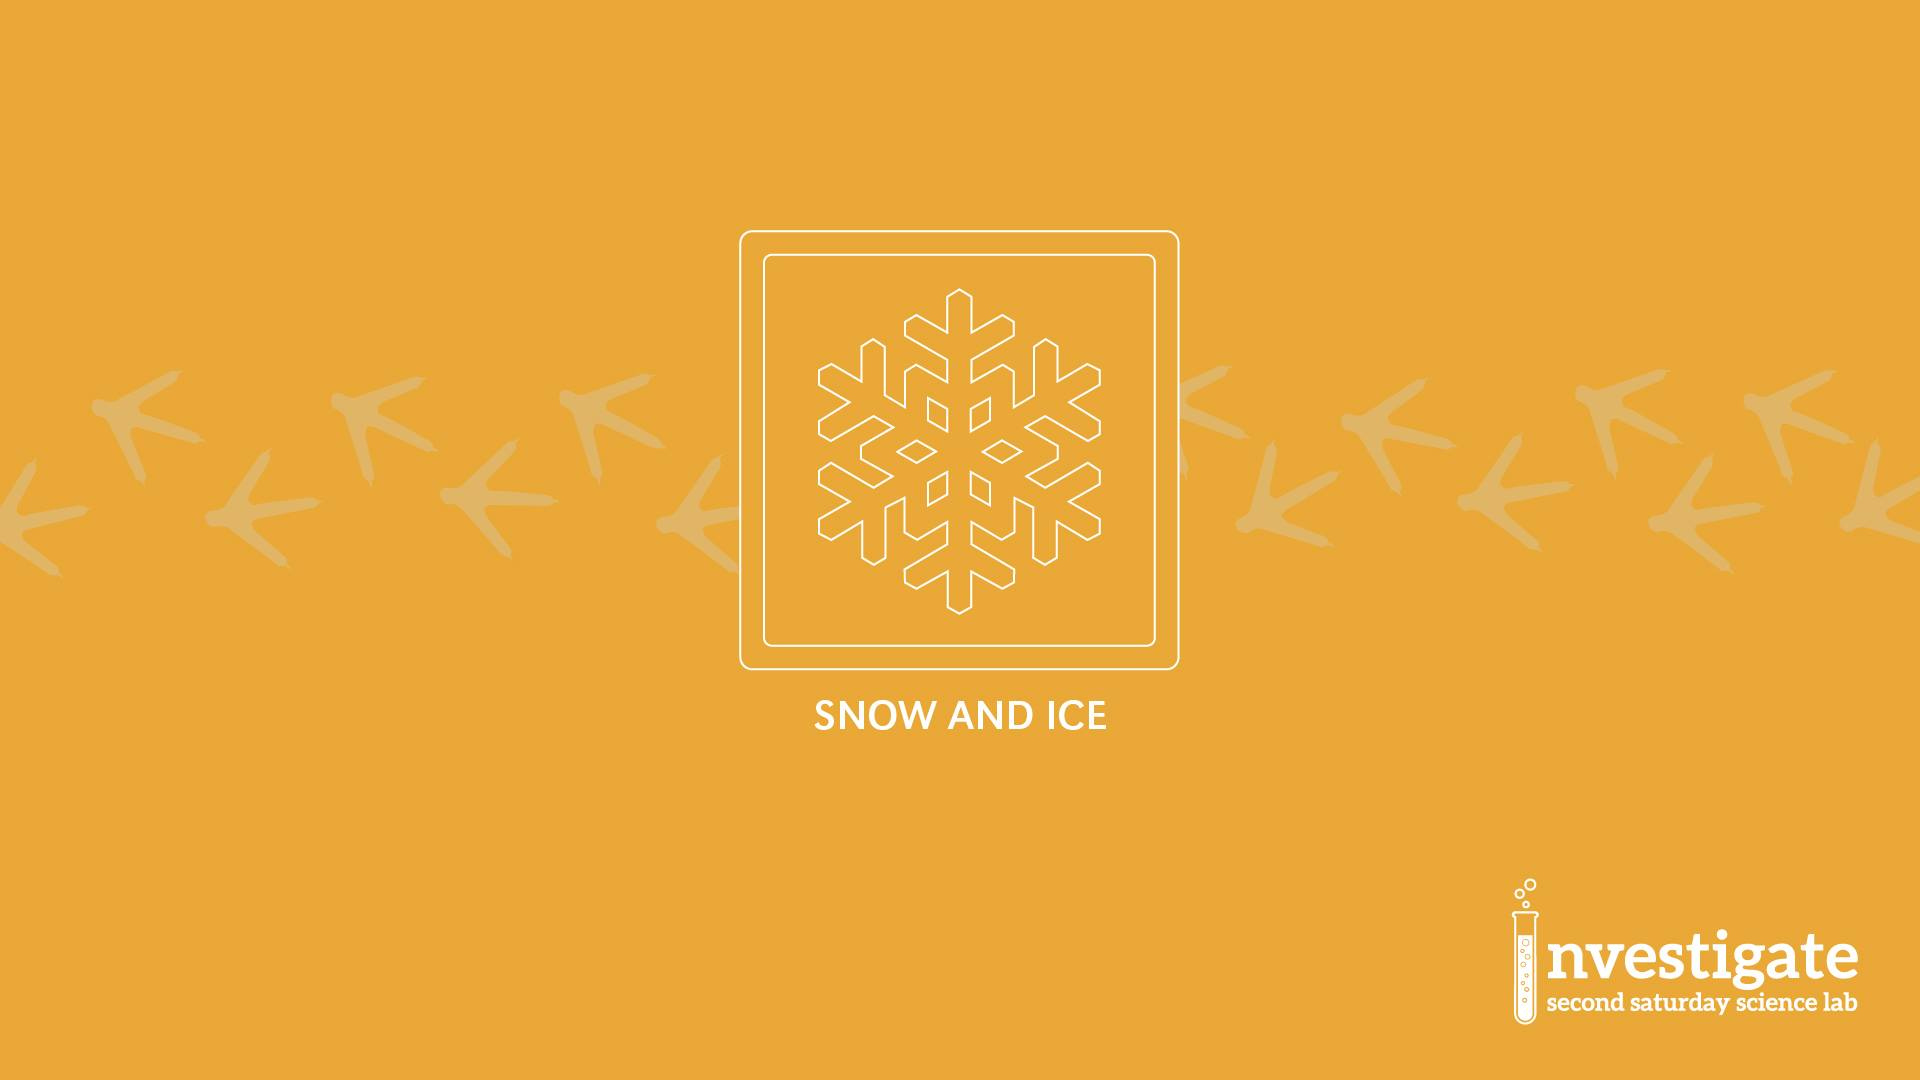 Investigate: Second Saturday Science Lab - Snow and Ice